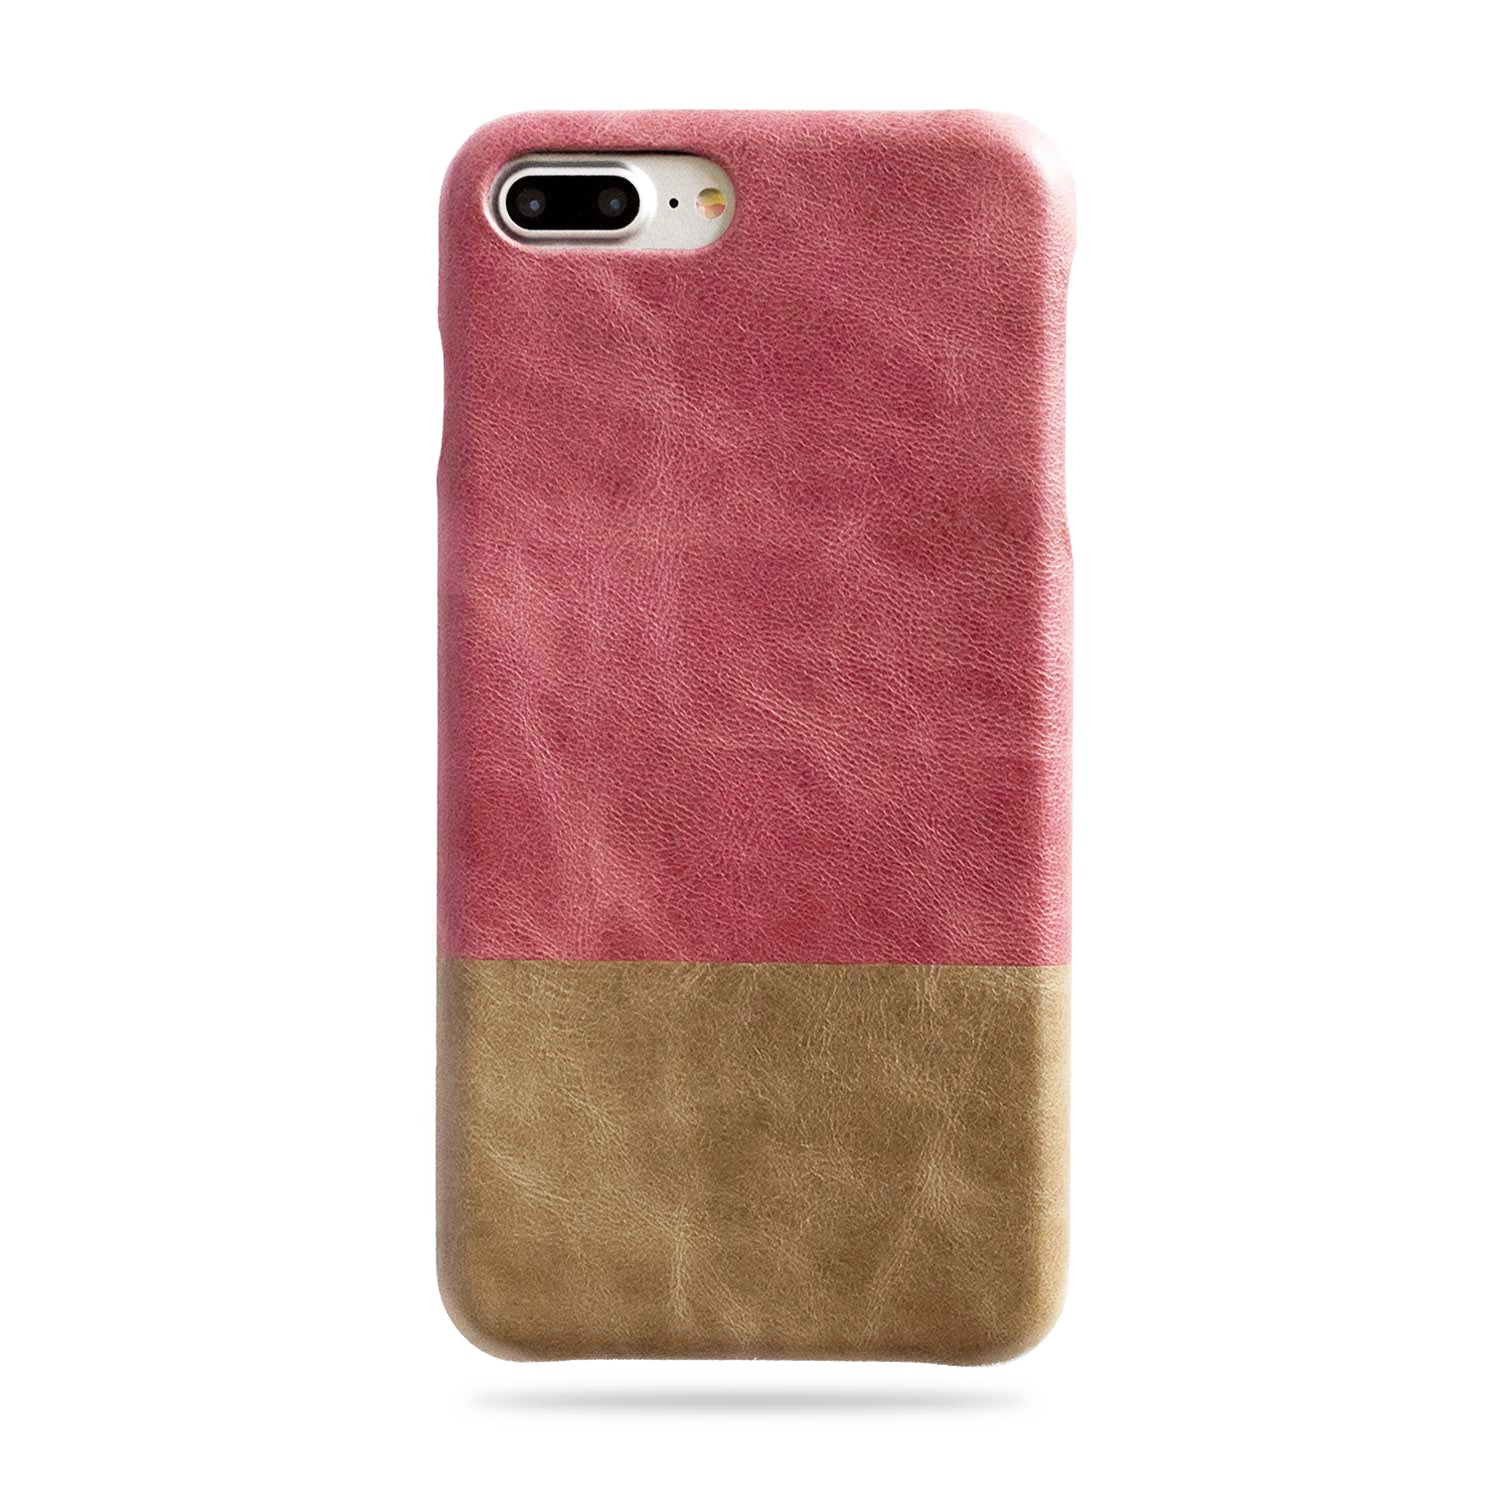 promo code 43307 a40ef Personalized Rosewood Pink iPhone 7 Plus / 8 Plus Leather Case ...